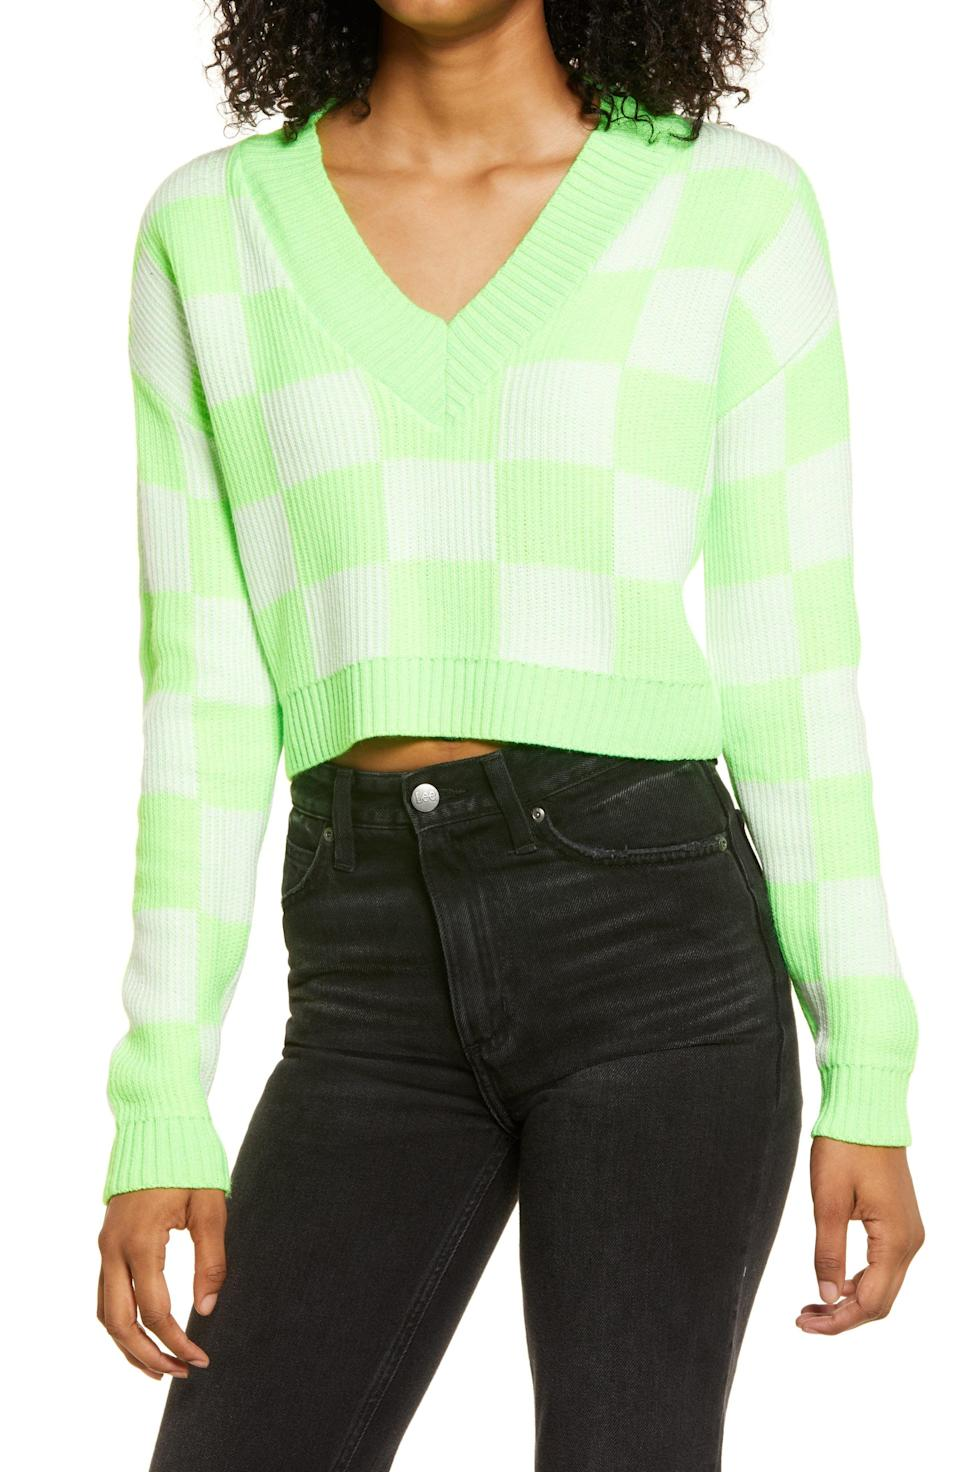 """<p><strong>BP</strong></p><p>nordstrom.com</p><p><strong>$24.75</strong></p><p><a href=""""https://go.redirectingat.com?id=74968X1596630&url=https%3A%2F%2Fwww.nordstrom.com%2Fs%2Fbp-check-v-neck-crop-sweater%2F5920559&sref=https%3A%2F%2Fwww.womenshealthmag.com%2Flife%2Fg36999215%2Fviral-tiktok-items-nordstrom-sale%2F"""" rel=""""nofollow noopener"""" target=""""_blank"""" data-ylk=""""slk:Shop Now"""" class=""""link rapid-noclick-resp"""">Shop Now</a></p><p>Minimalism and neutral colors will always be cool and effortlessly chic, but as fashion starts to embrace brighter, bolder shades, TikTok has gone crazy over this sweater. </p><p>The cropped silhouette, v-neck, and neon green make it a fun take on that cozy old sweater you stole from your dad in college (was that just me?). </p>"""